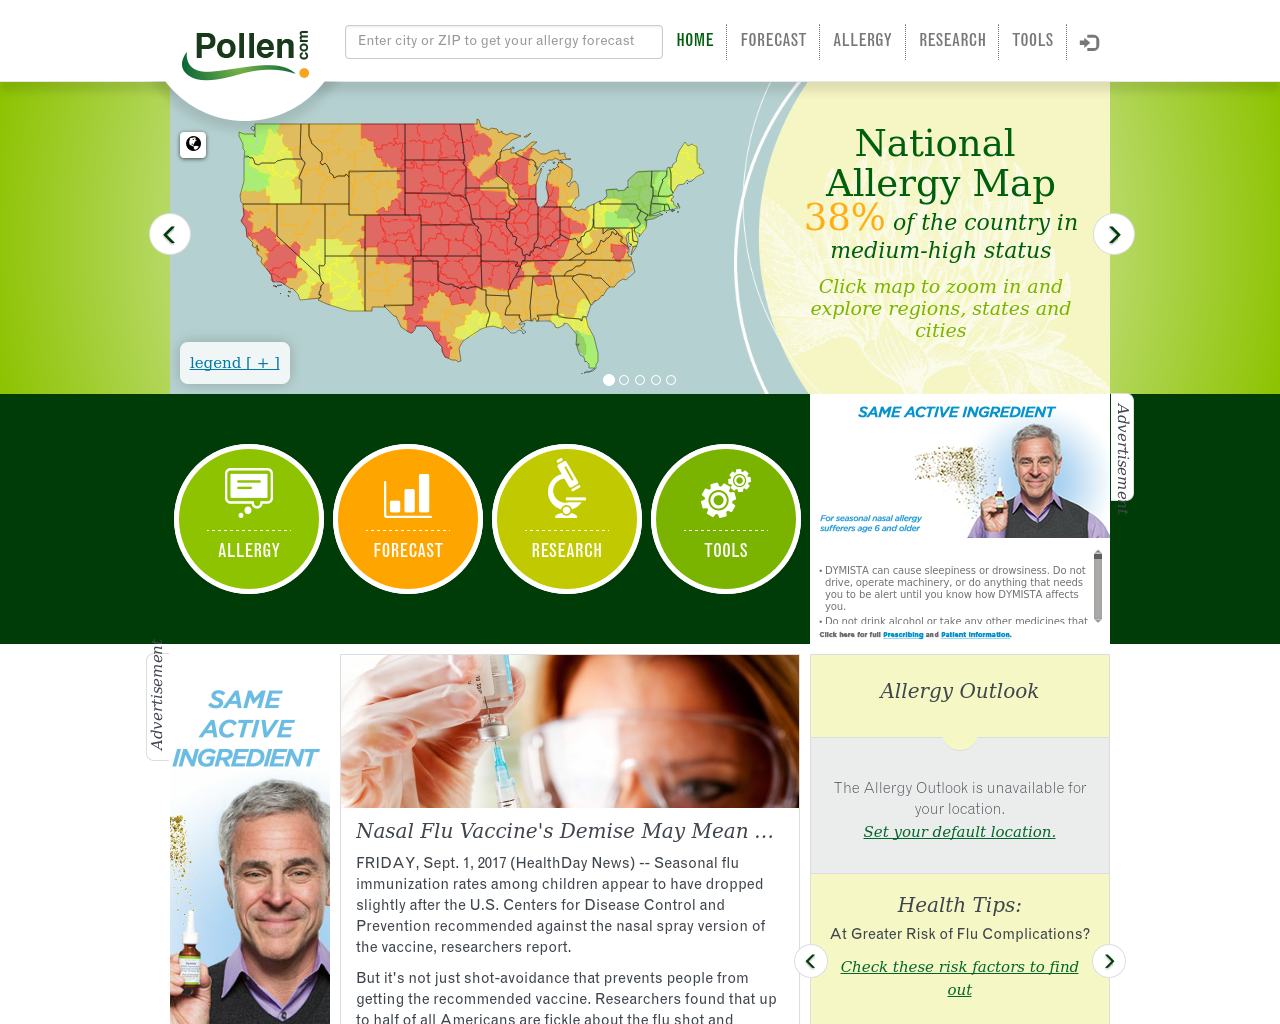 pollen.com-Advertising-Reviews-Pricing